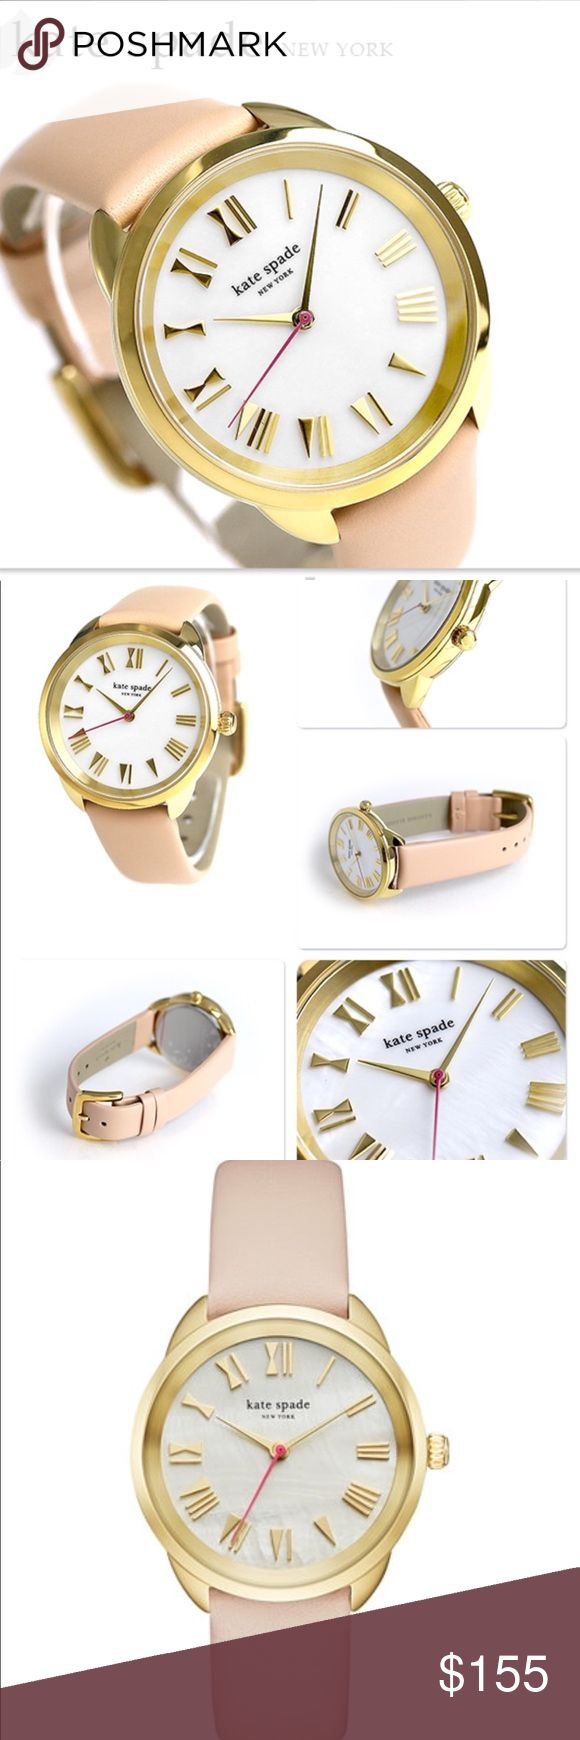 Kate Spade Vachetta Leather Mother of Pearl Watch New! Kate Spade Vachetta Leather Mother of Pearl Watch • Brand new with tags in original box. Genuine leather band in buff / pink / nude / brown / neutral with gold Roman numeral bows for numbers. Gold tone hardware + mother of pearl face. ✂️Flash Sale Price Firm! Ends Tonight ✂️No offers! Price is lowest Kate Spade Accessories Watches